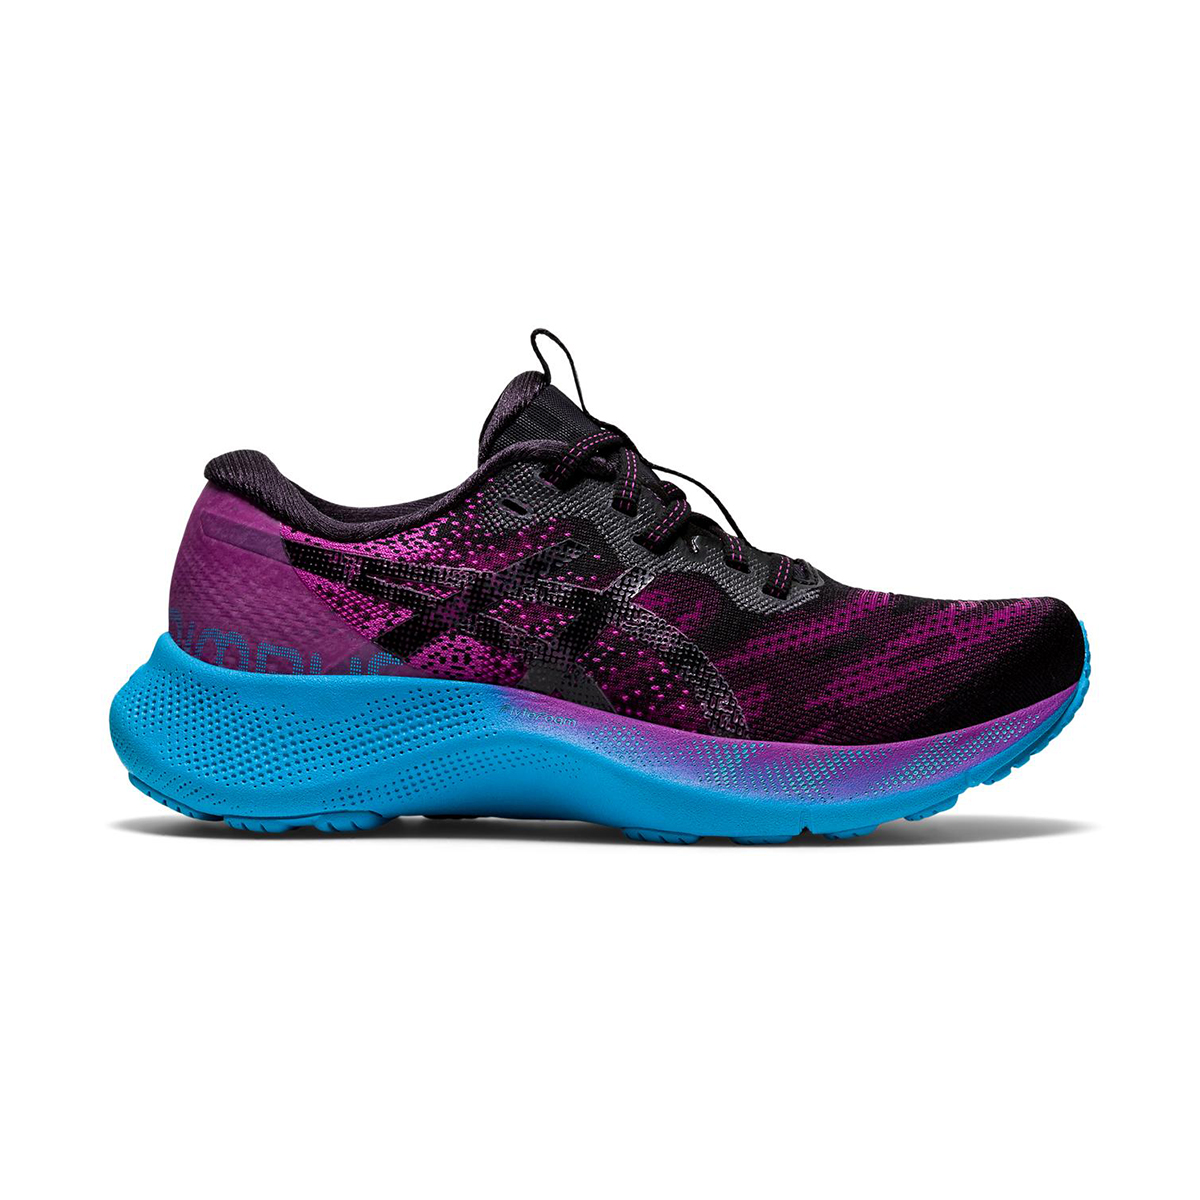 Women's Asics Gel-Nimbus Lite 2 Running Shoe - Color: Digital Grape/Black - Size: 5 - Width: Regular, Digital Grape/Black, large, image 1